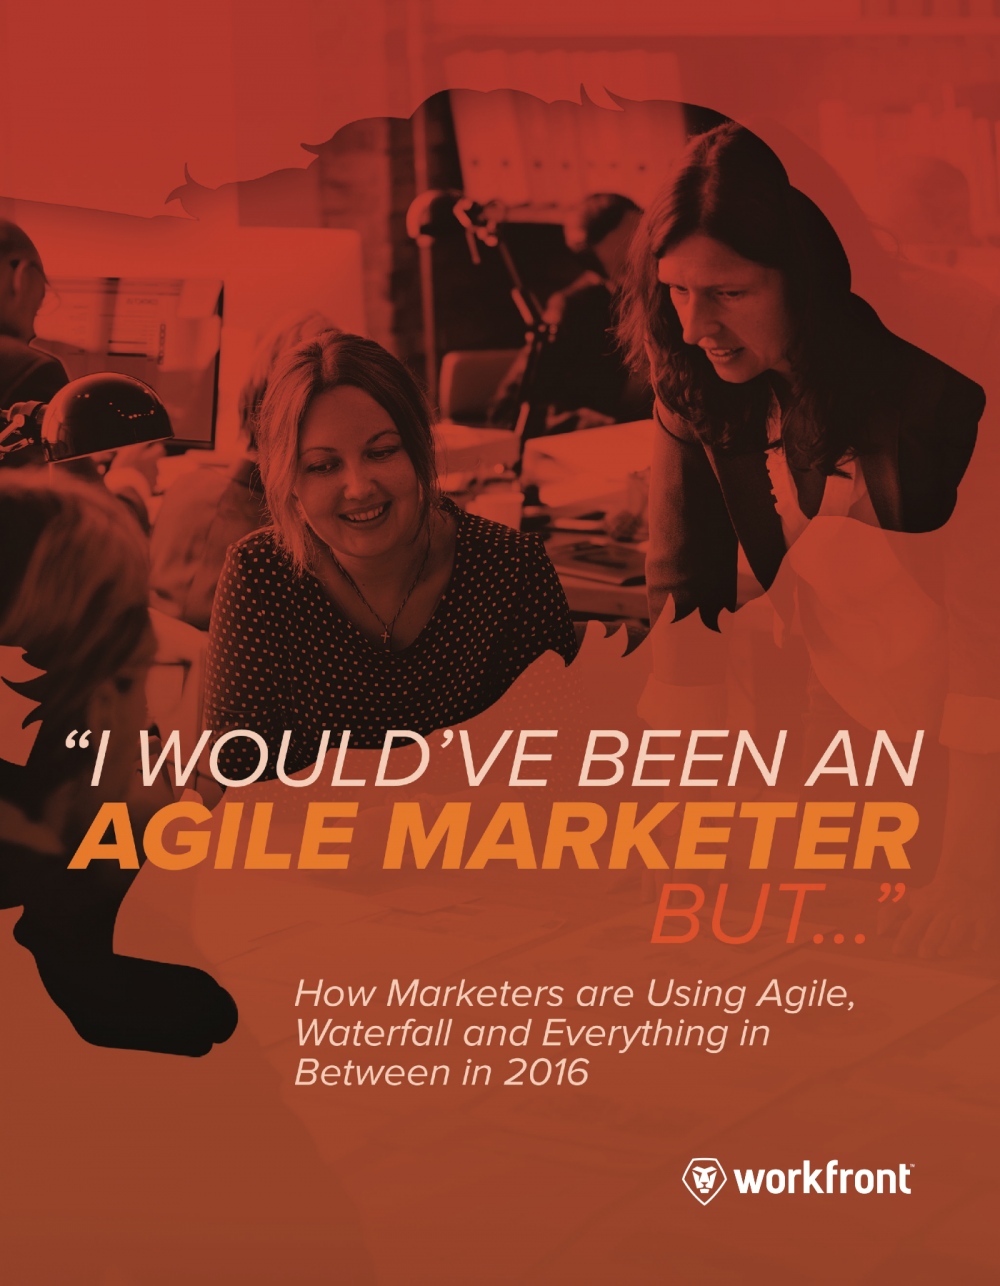 What's Keeping Marketers From Going Agile?